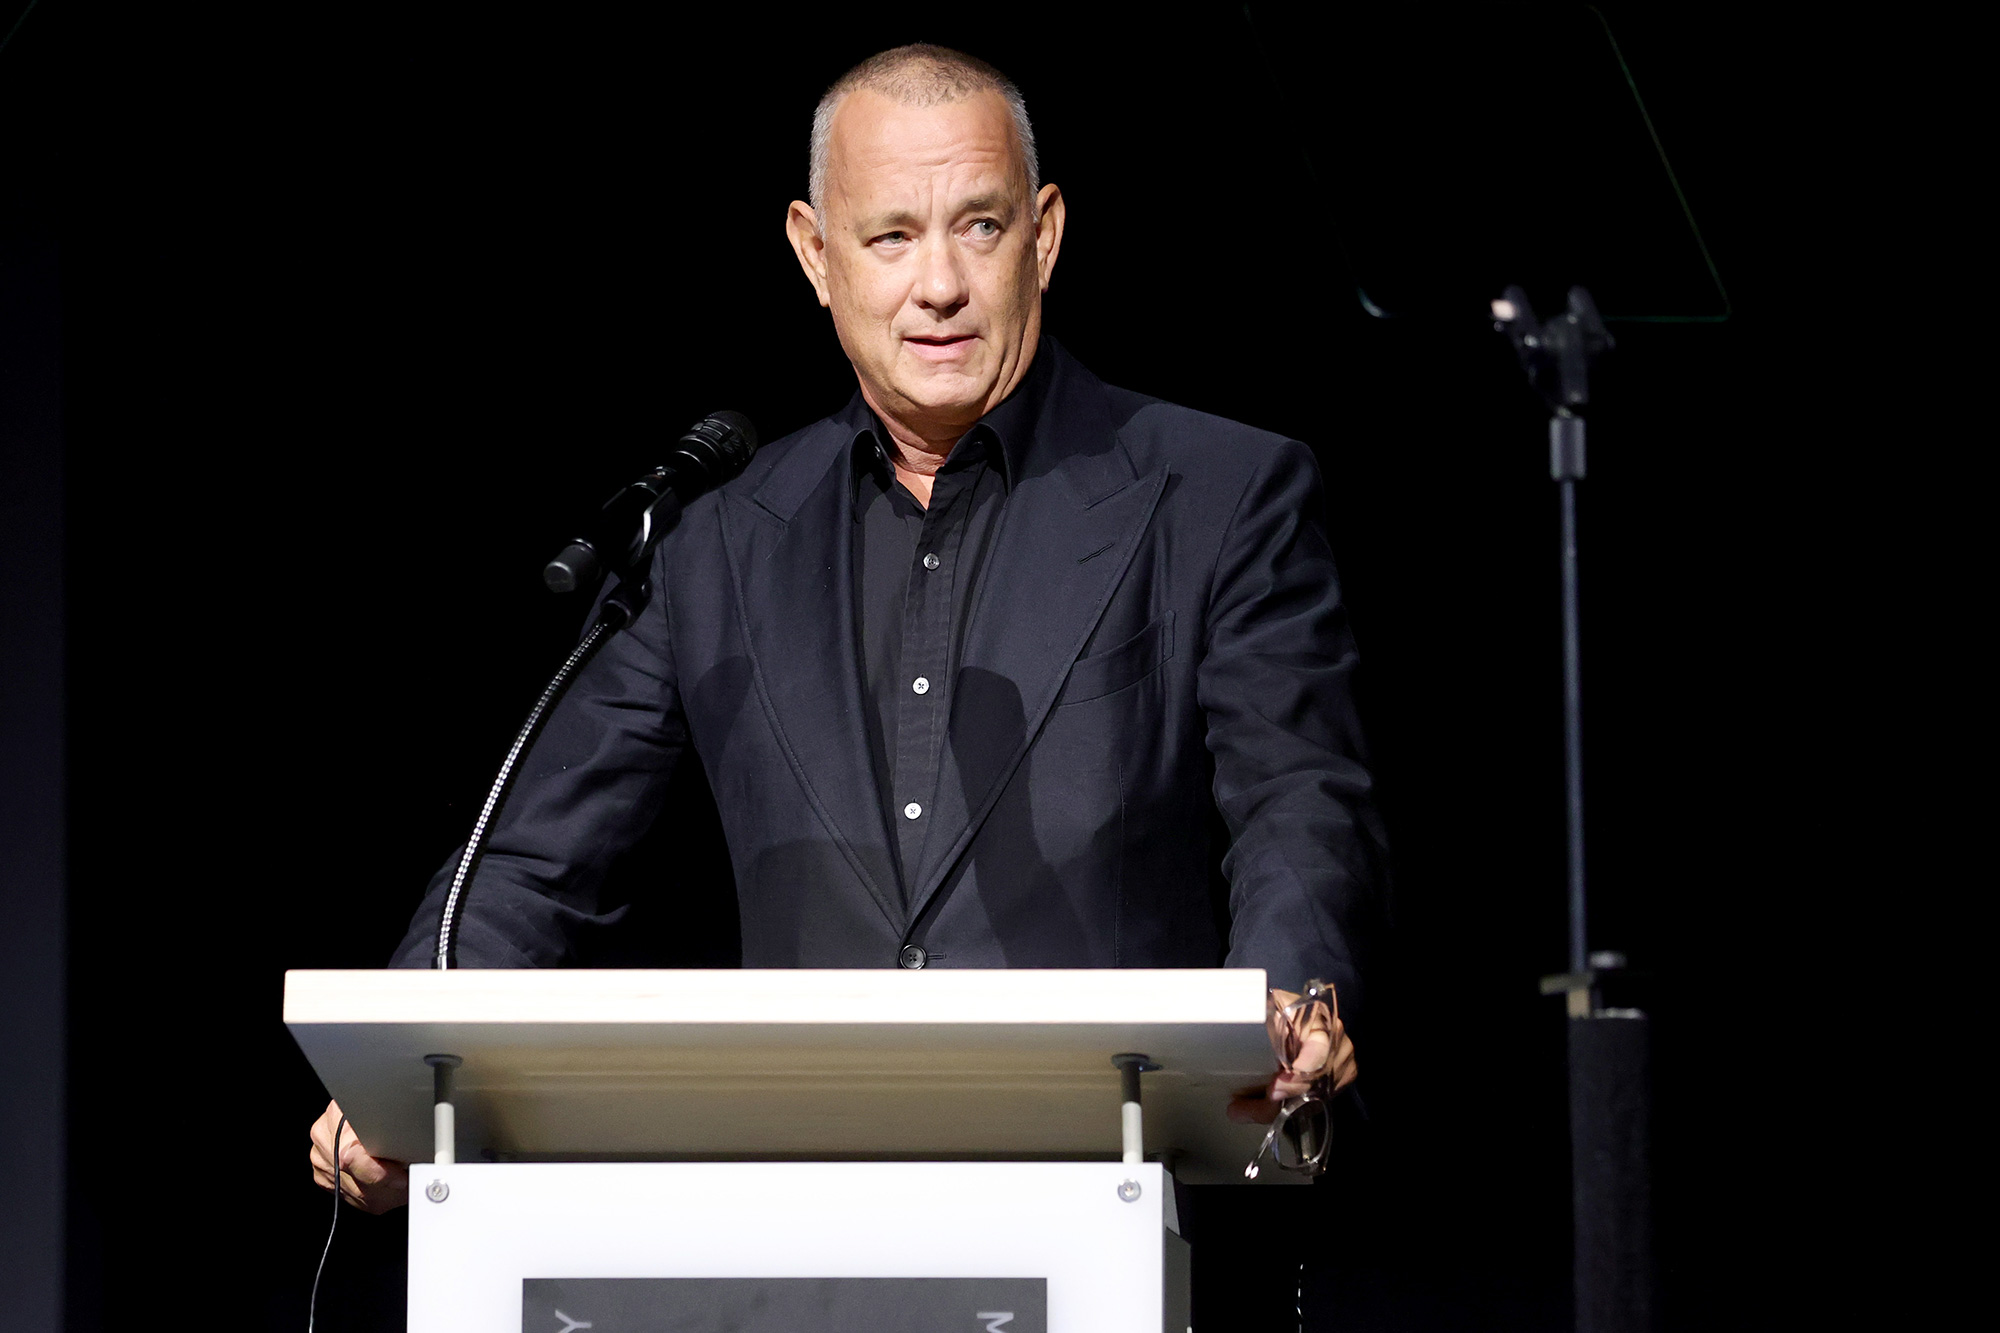 Academy Museum of Motion Pictures trustee Tom Hanks speaks onstage during the Academy Museum Opening Press Conference at Academy Museum of Motion Pictures on September 21, 2021 in Los Angeles, California